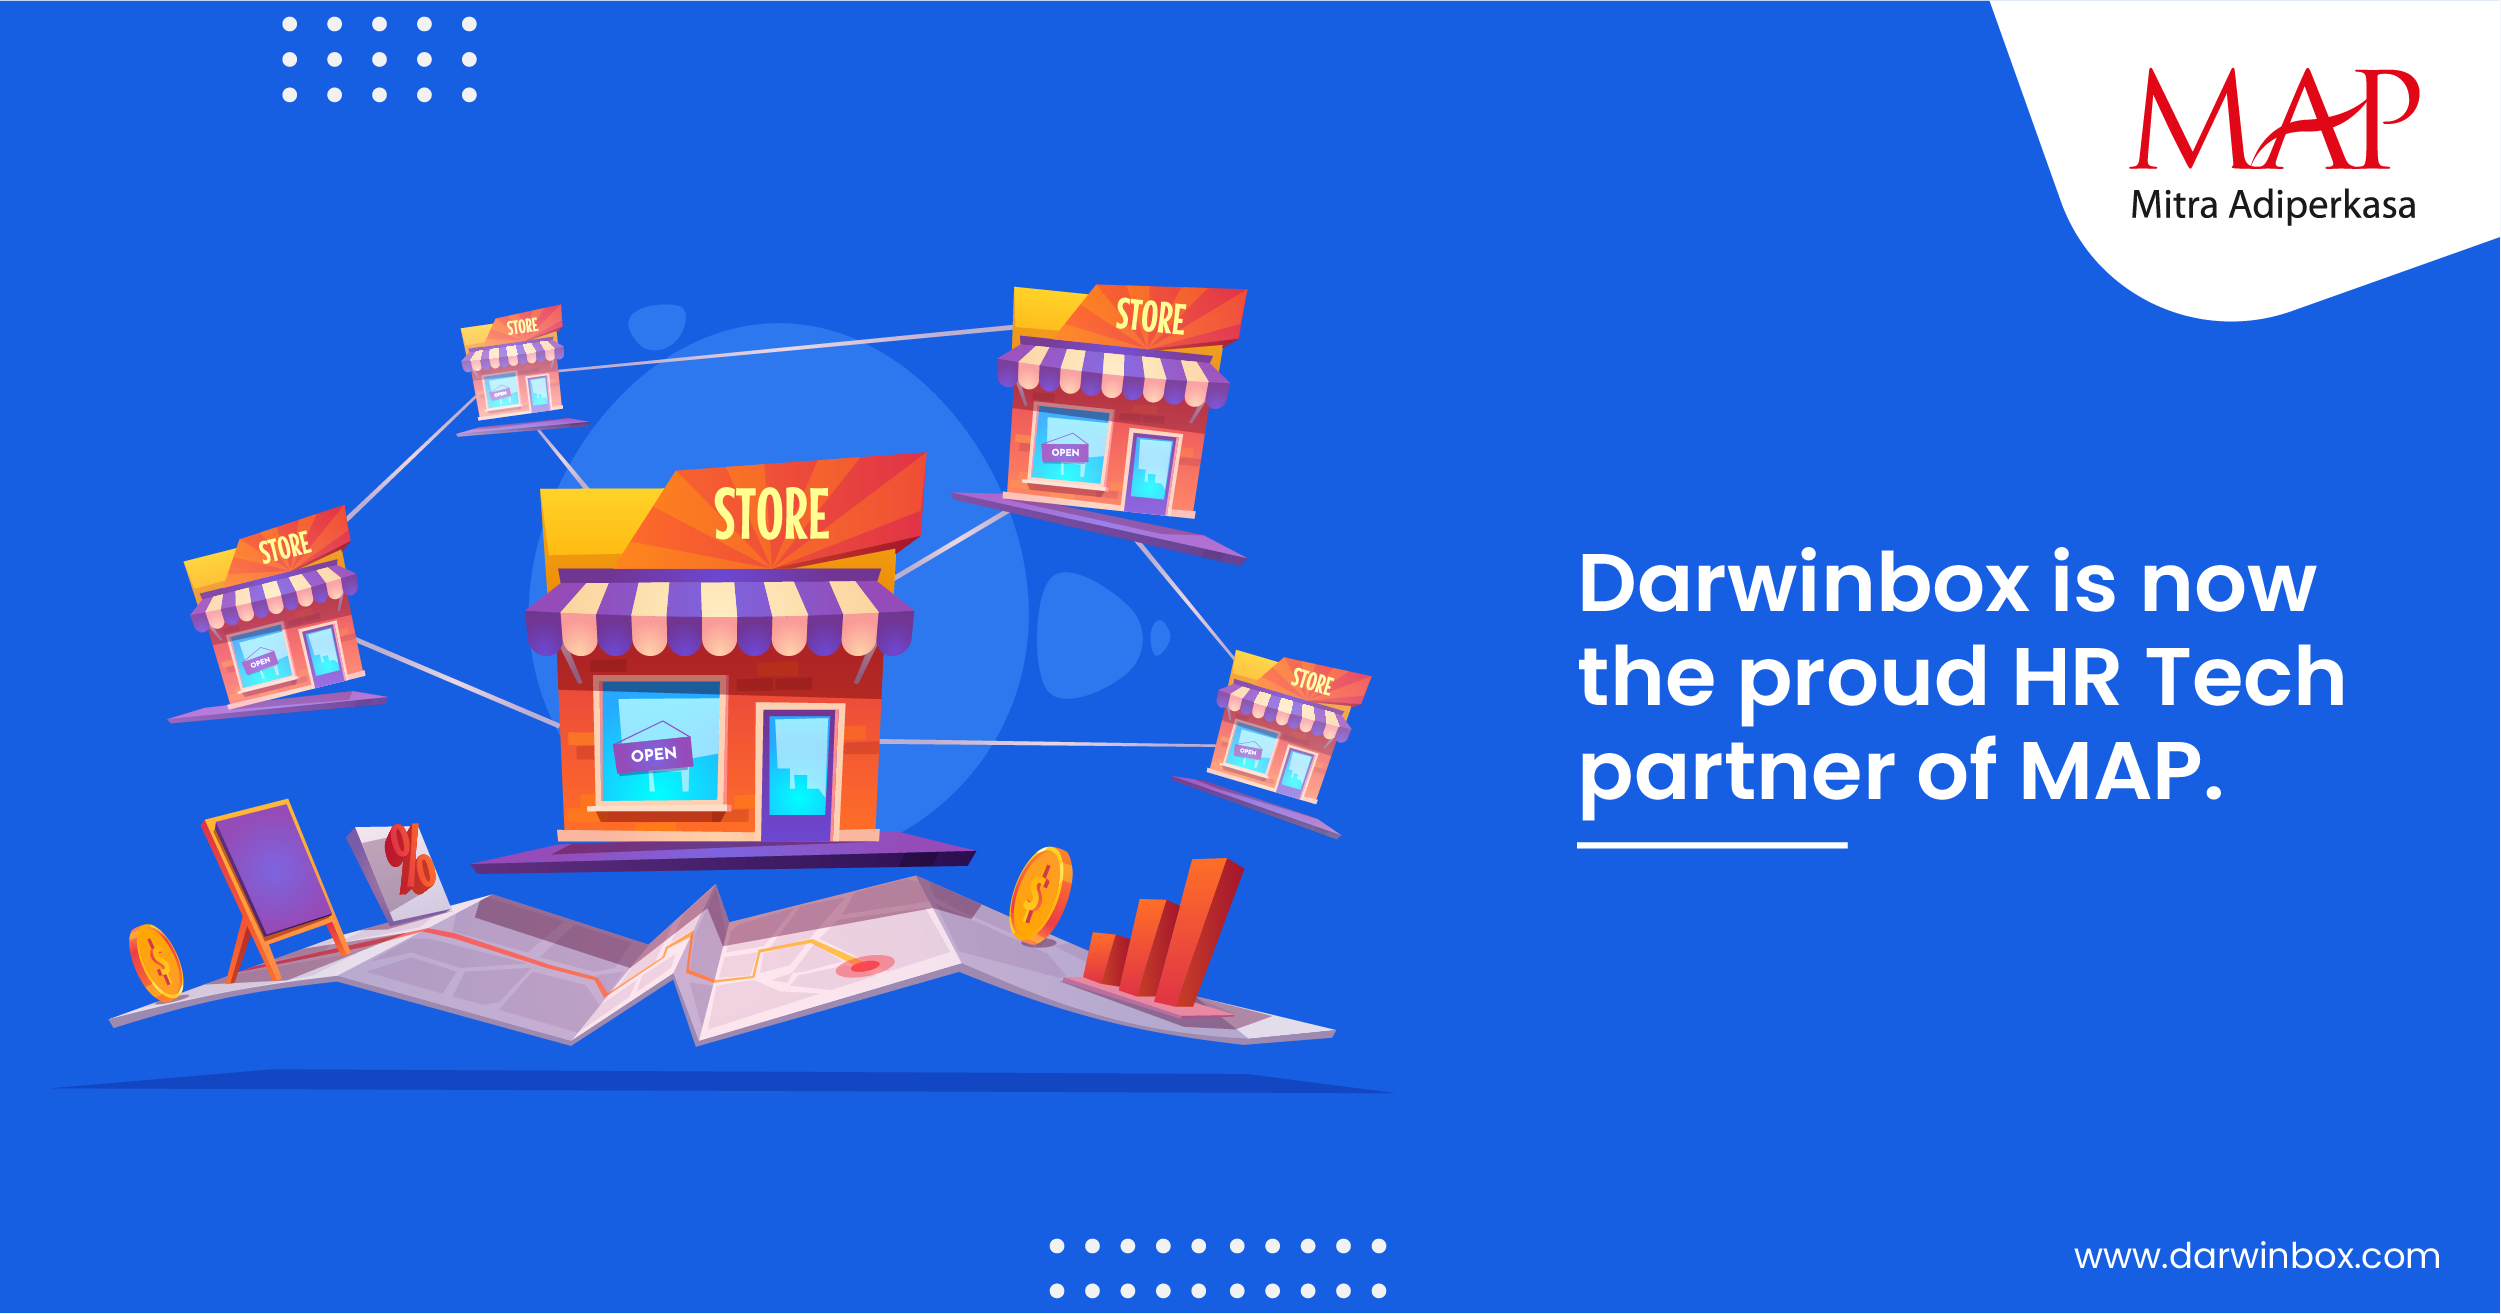 MAP partners with Darwinbox